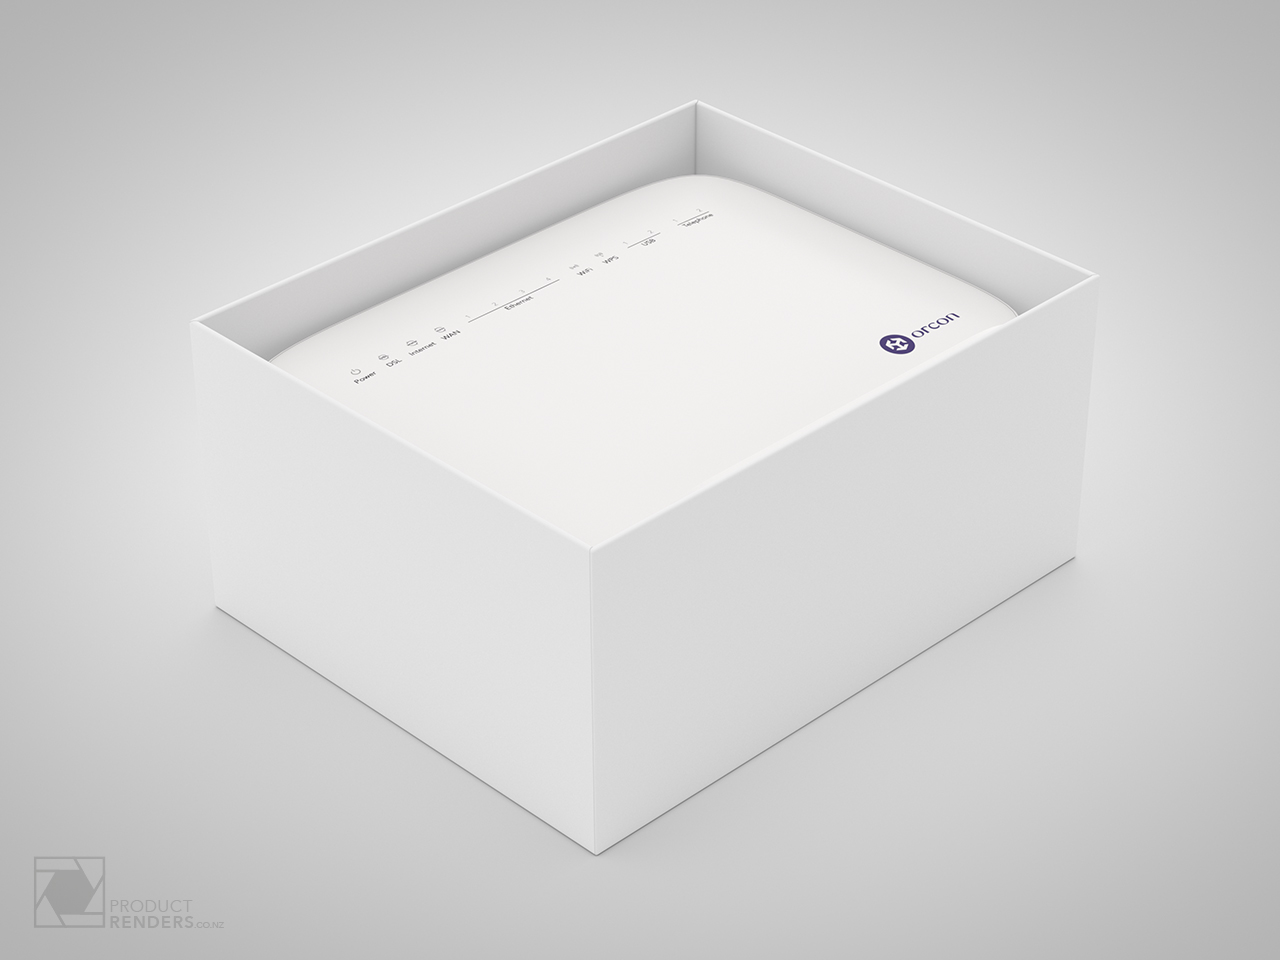 3D render of the opened Orcon modem packaging box showing the modem router inside